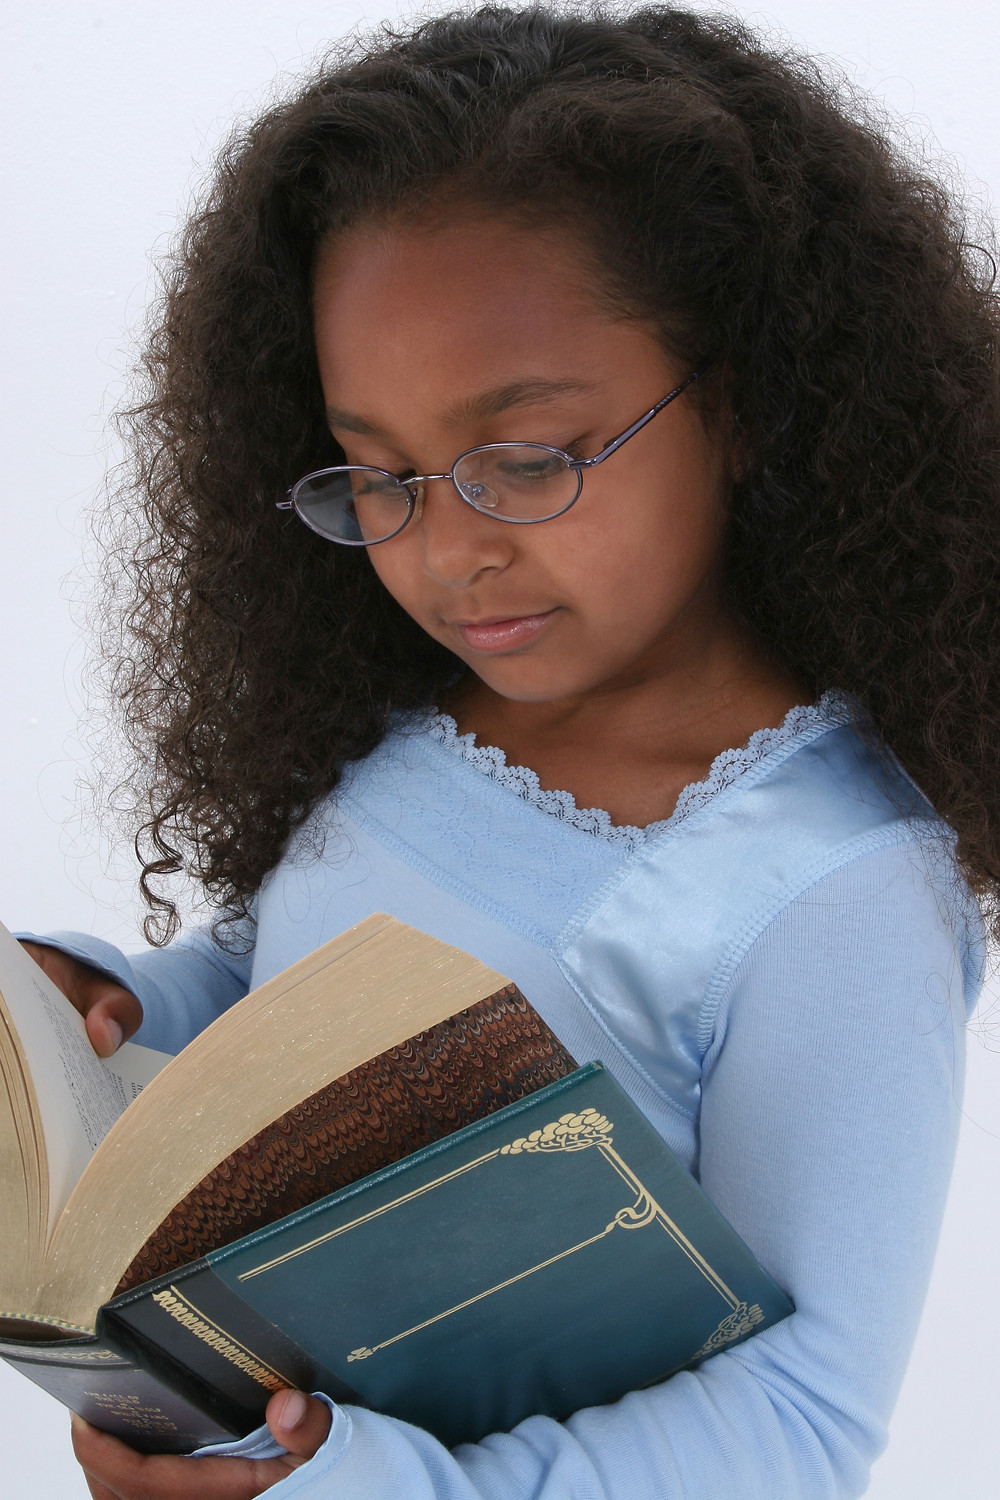 Beautiful Six Year Old In Glasses Readign Large Book.jpg